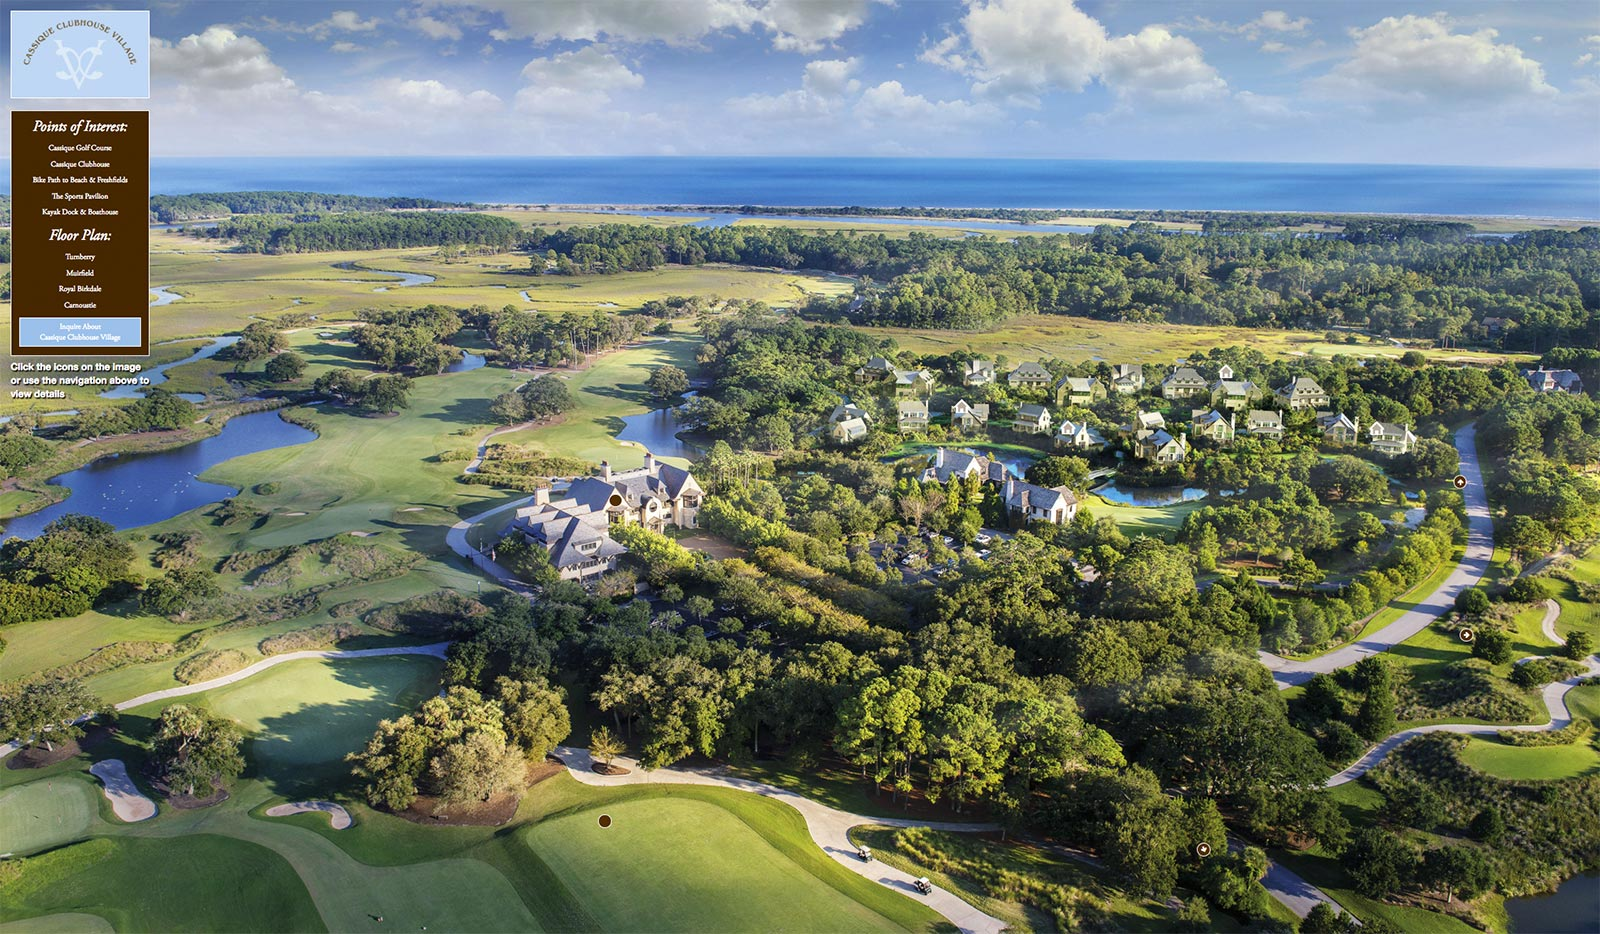 Aerial image of Kiawah Island's Cassique Clubhouse Village